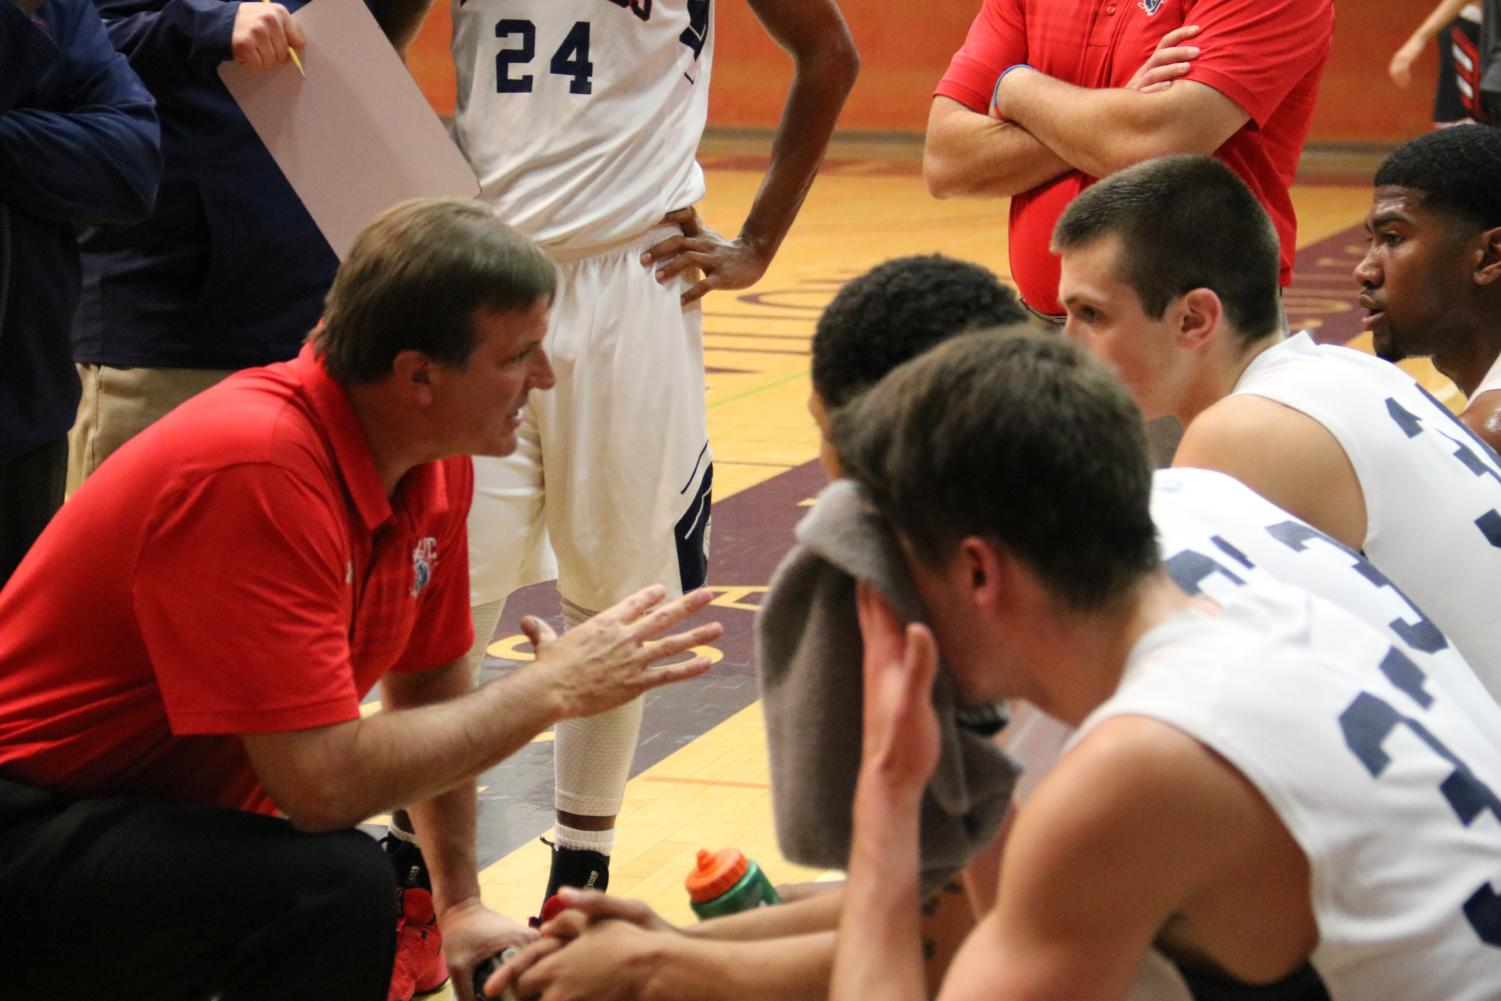 Head coach Craig McMilian focuses his team during a timeout.